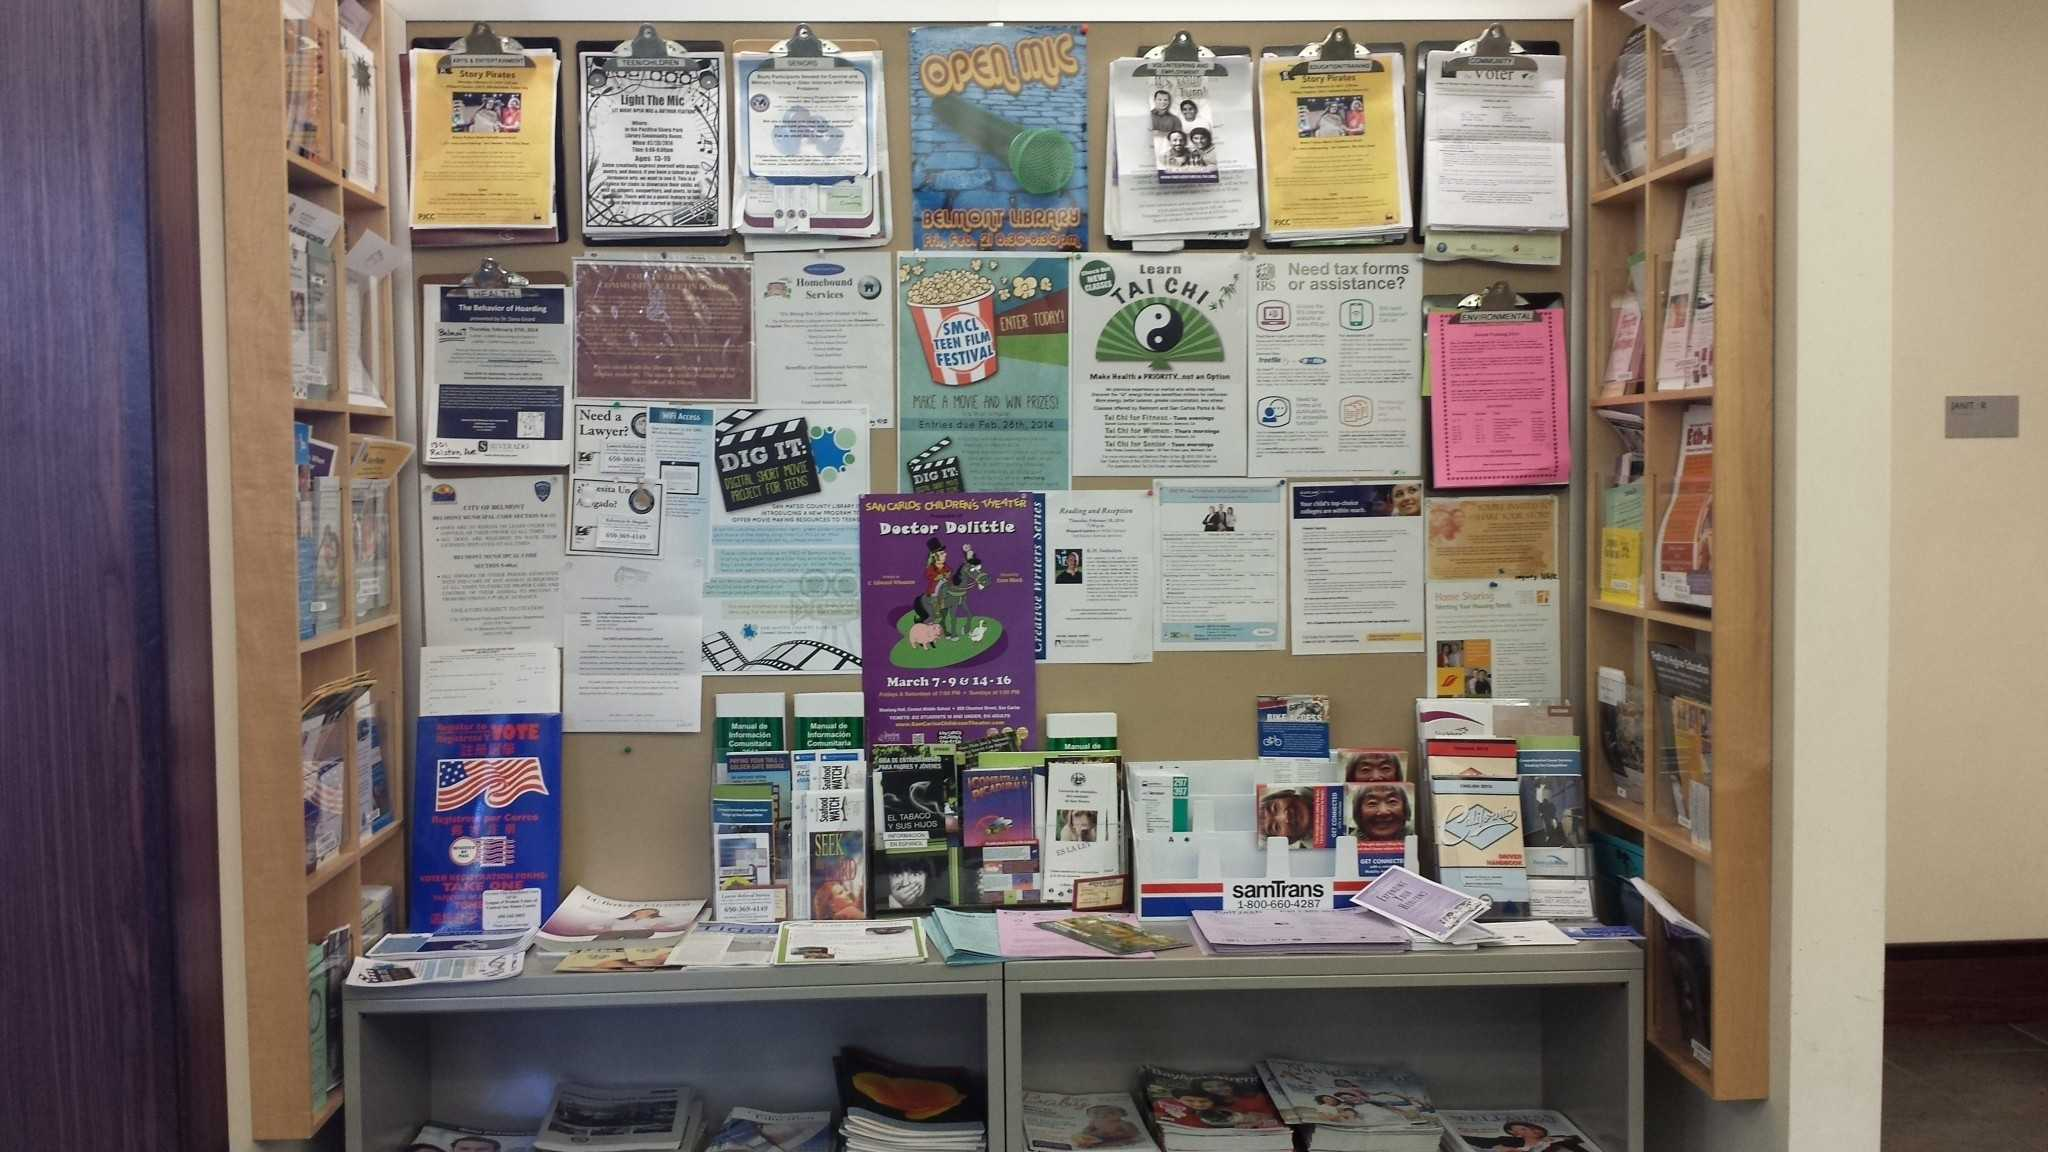 The Belmont Library is full of opportunities to get involved and better the community.